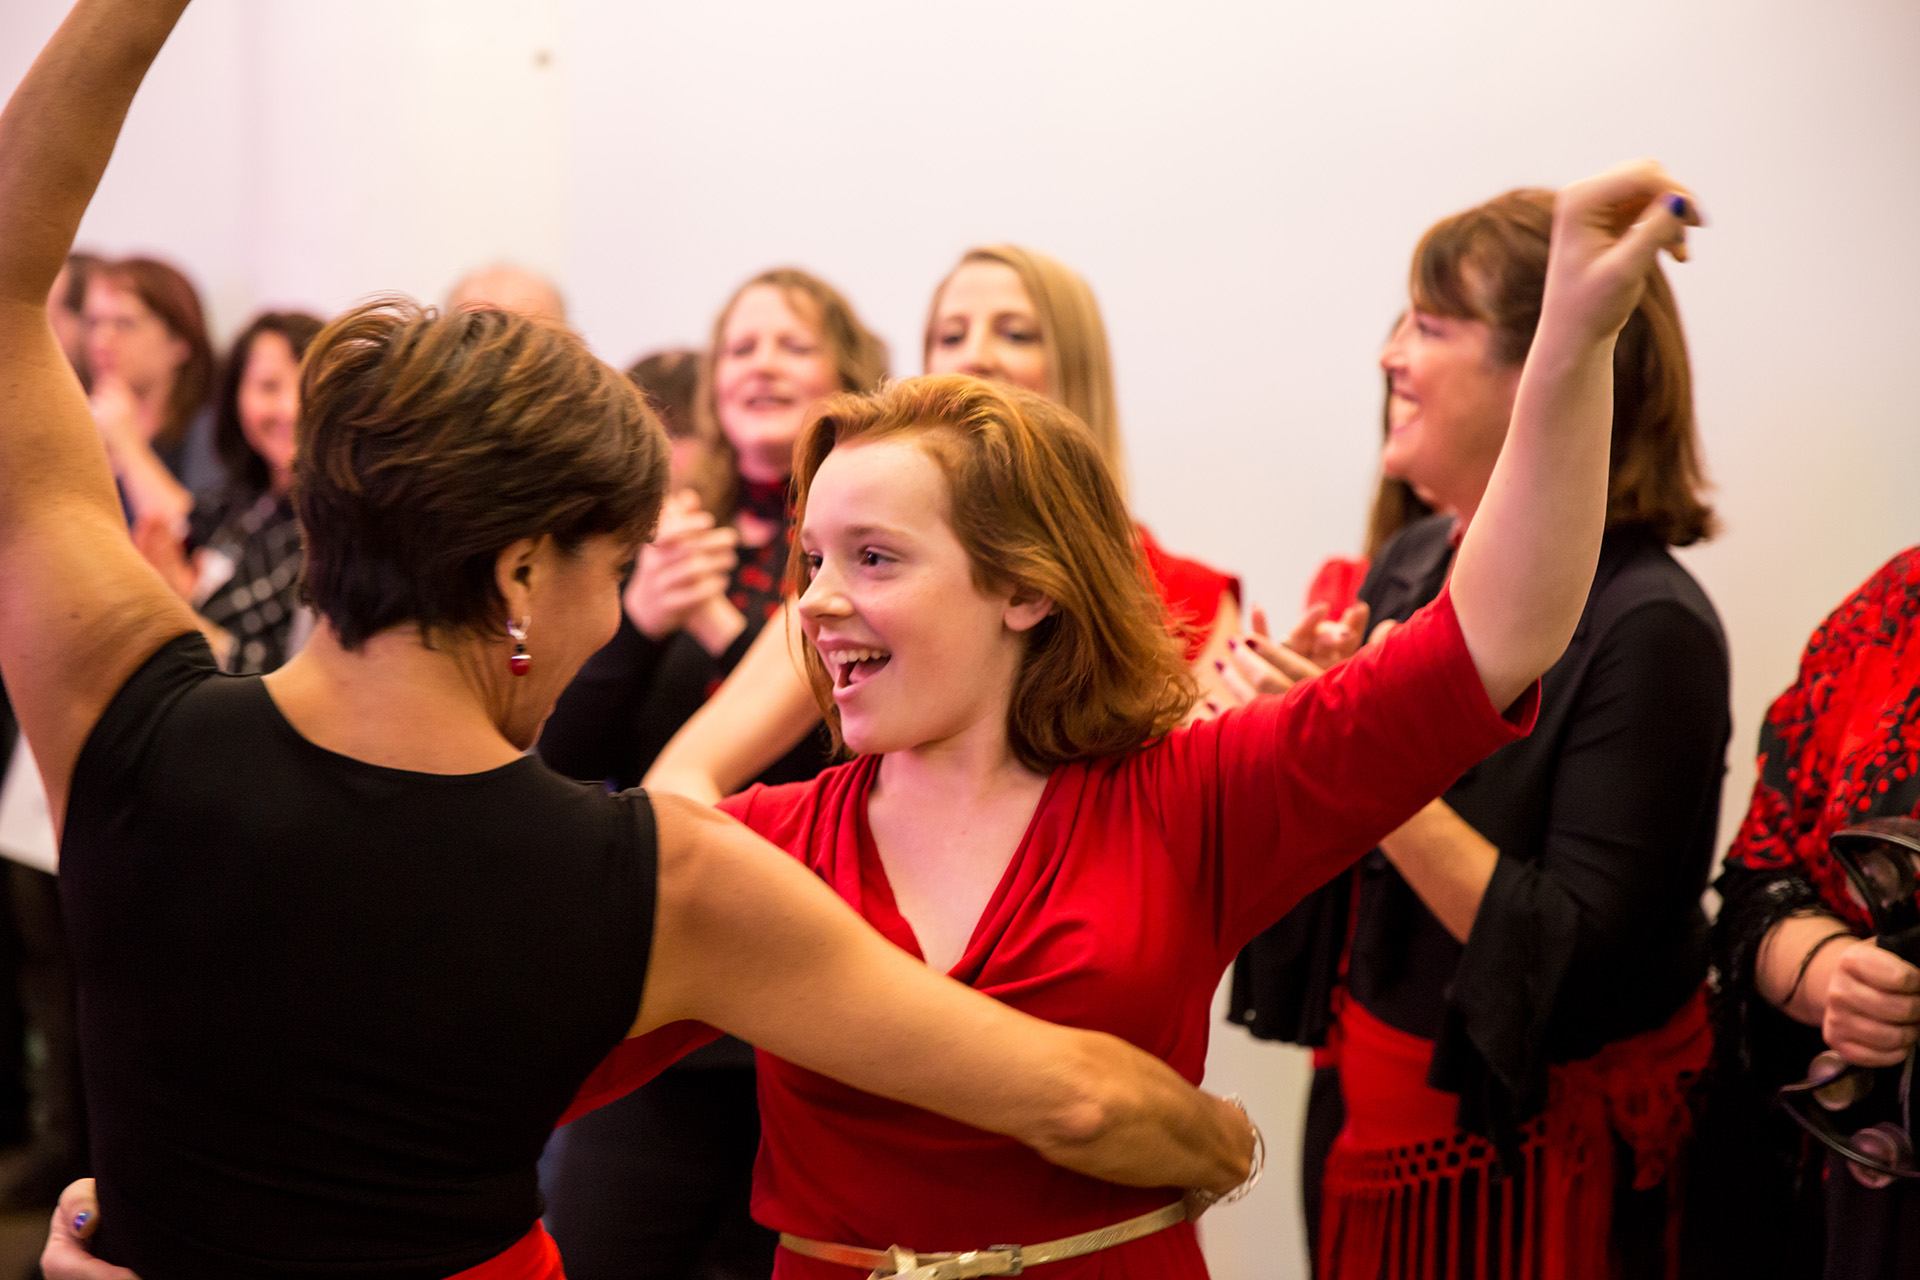 Join in Saturday's flamenco procession and sing-a-long in East St. Paul